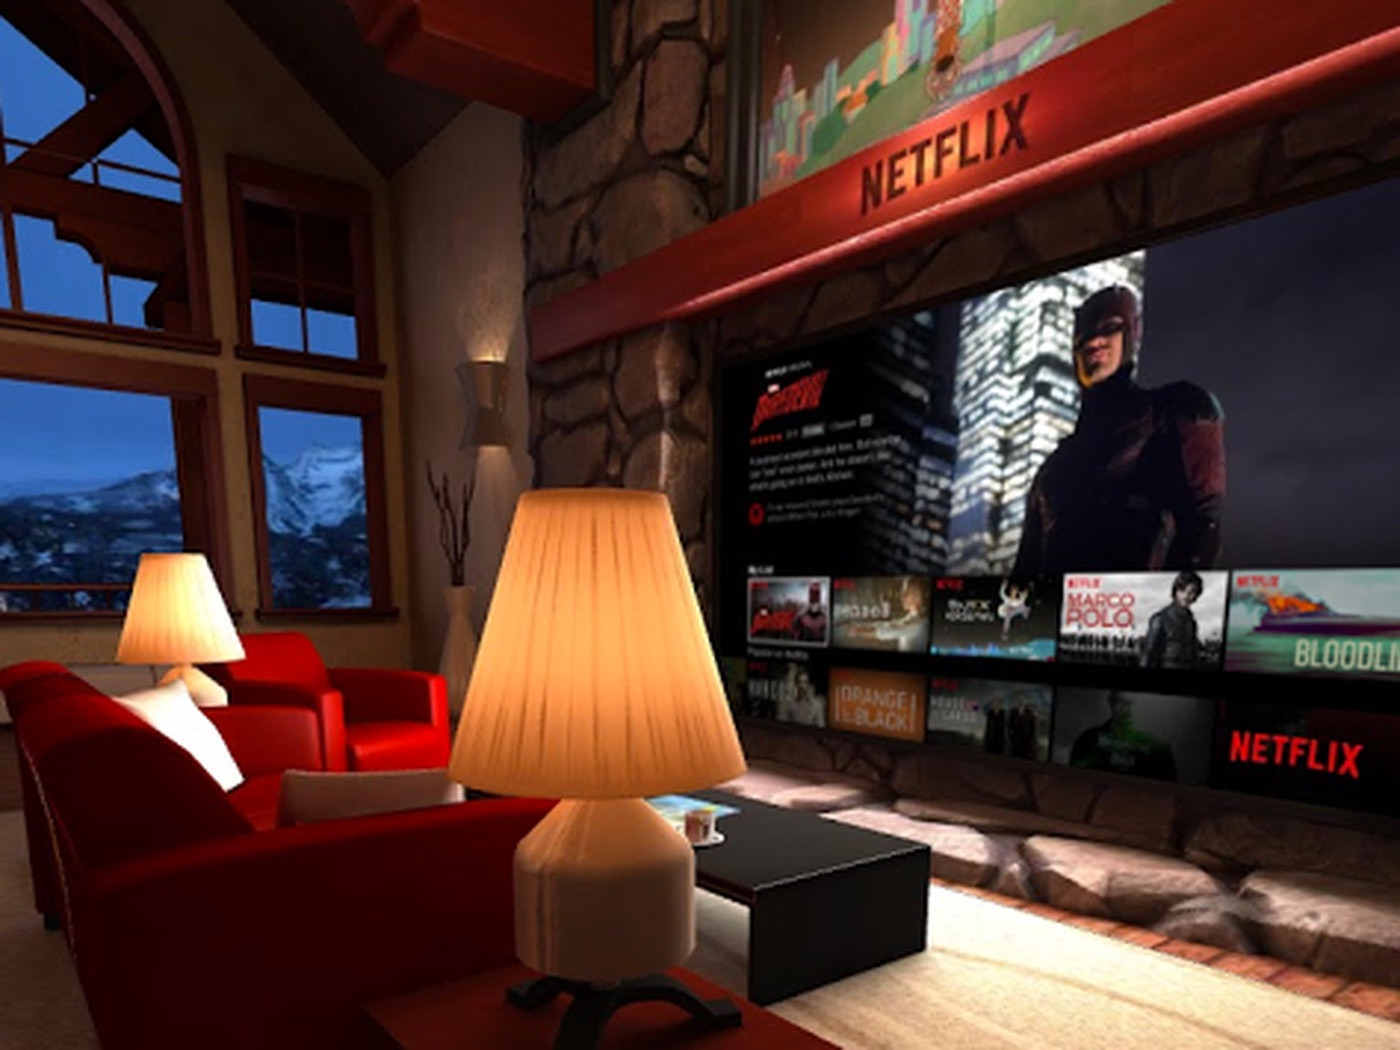 NETFLIX VR room on quest 2 Uploaded by @Alextench